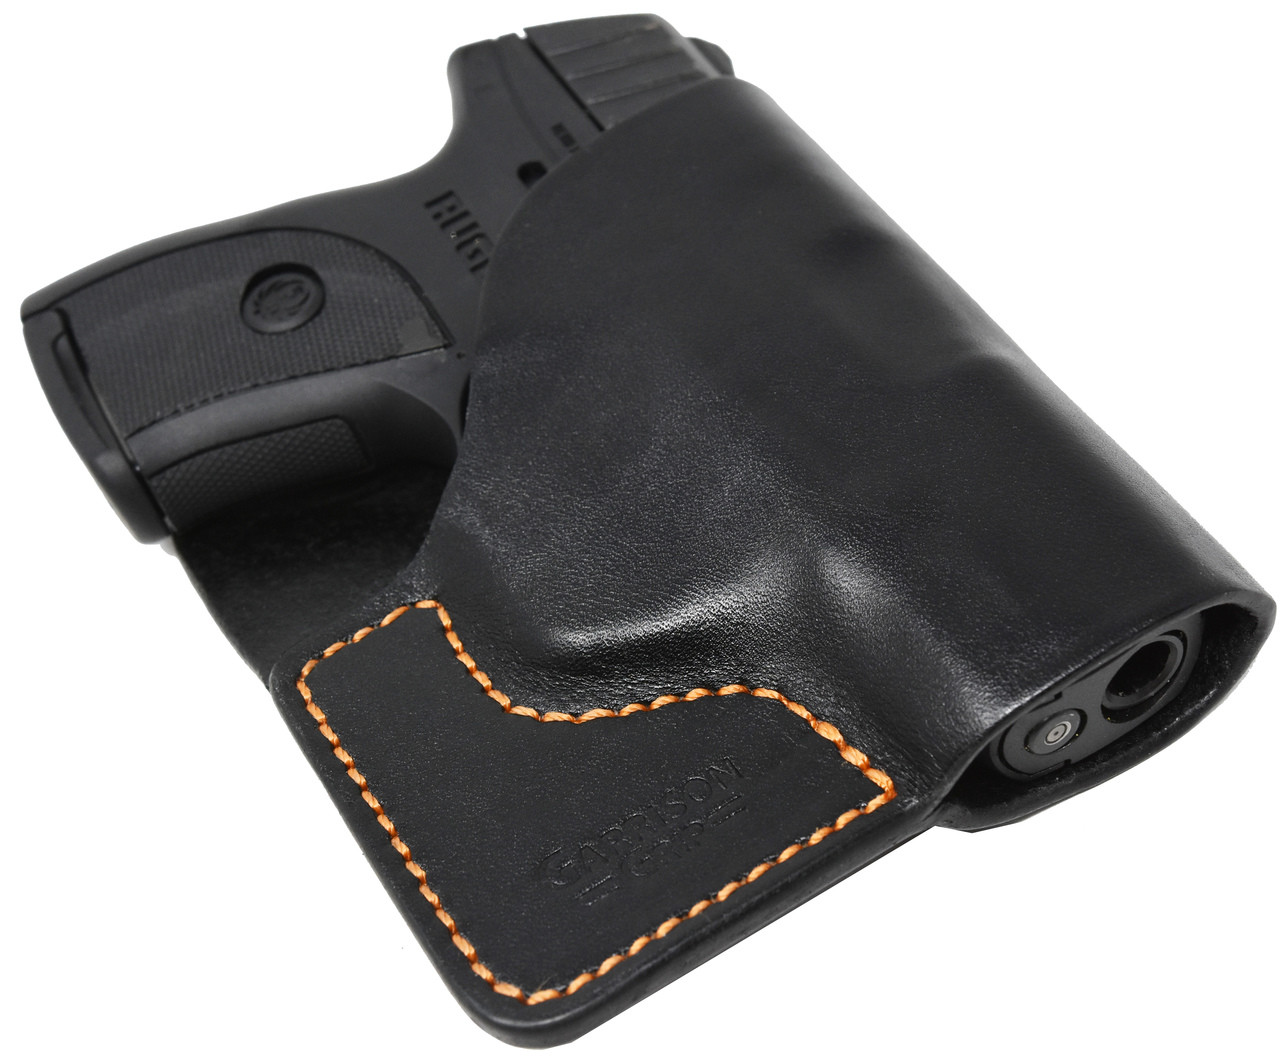 Black Italian Leather Pocket Holster for Ruger LC9 and EC9 and Similar Guns